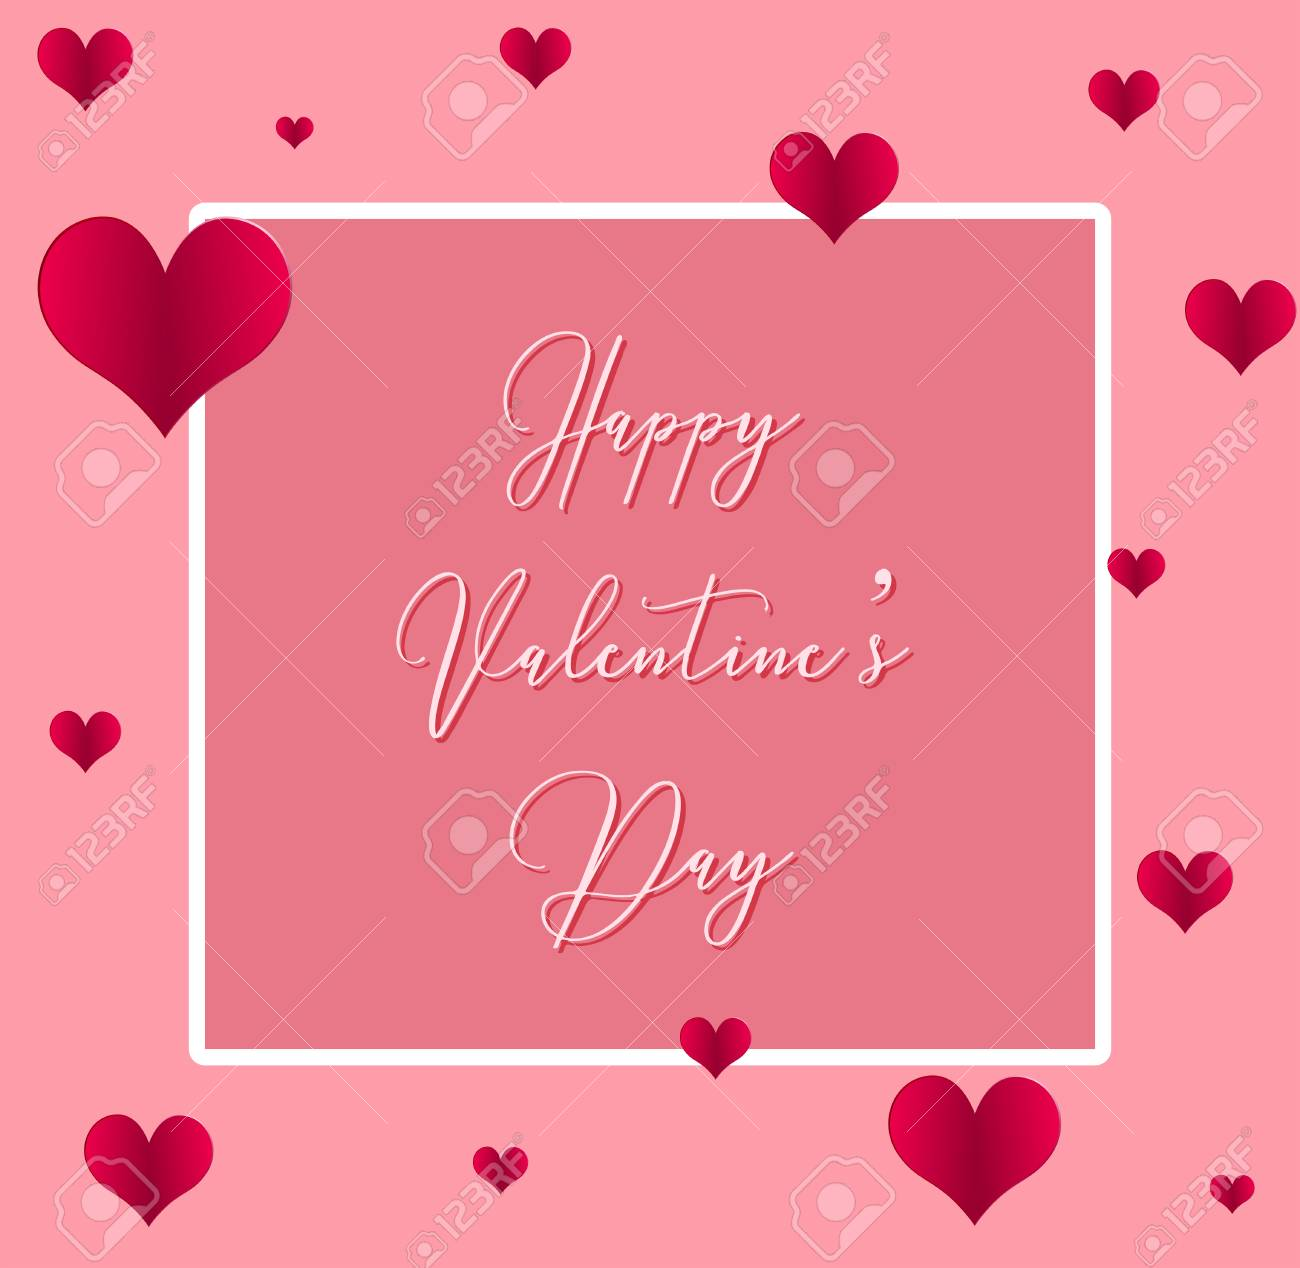 Valentine Card Template With Hearts On Pink Background Illustration